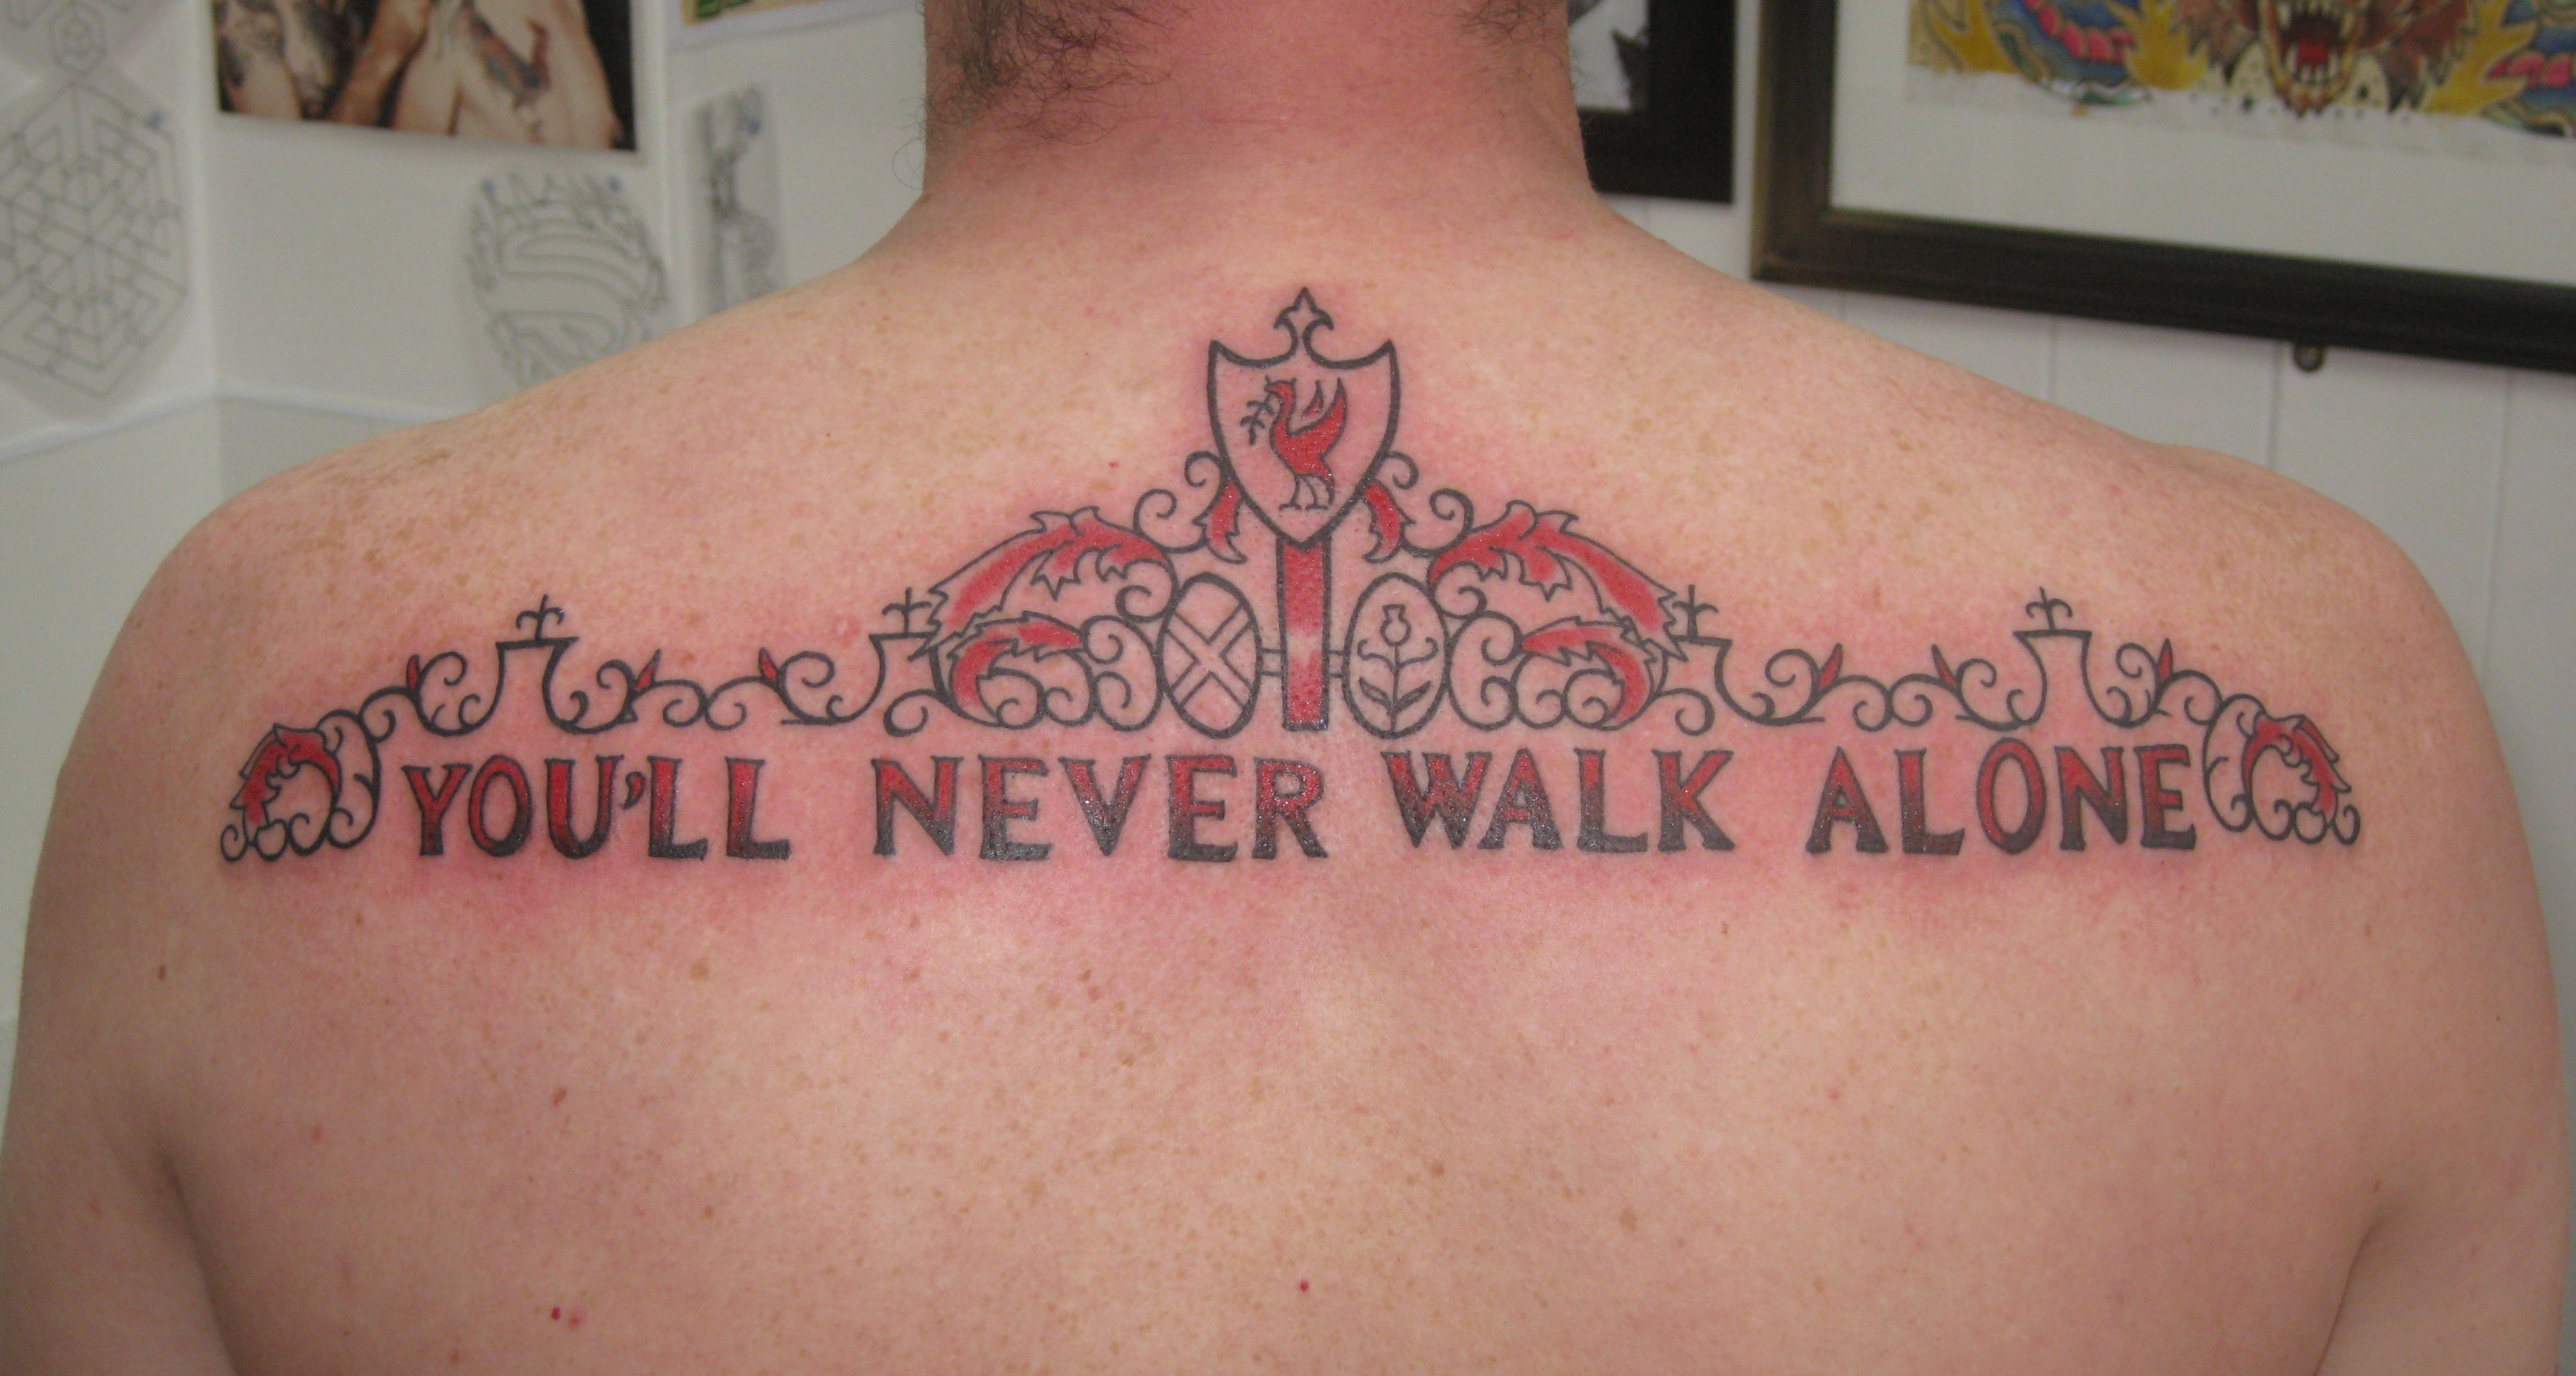 Walk with the knowledge that you are never alone. Tattoo